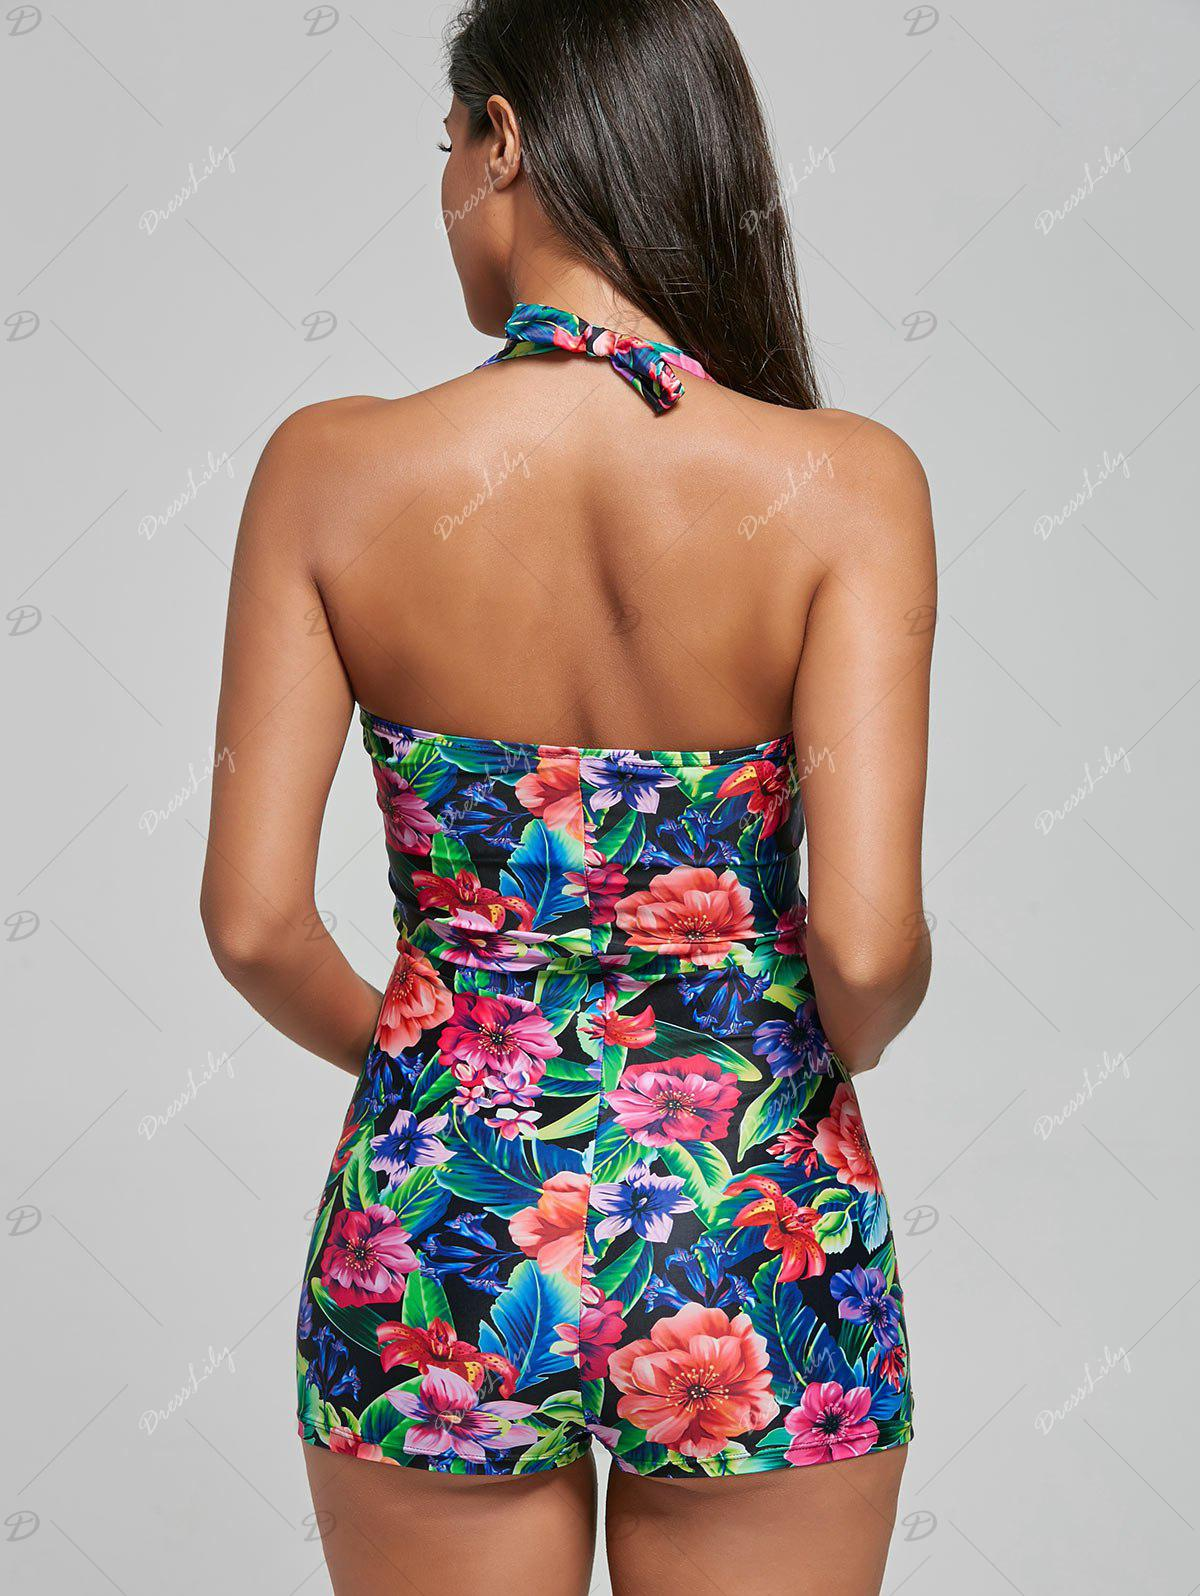 Backless Halter Floral One Piece Swimsuit - COLORMIX M